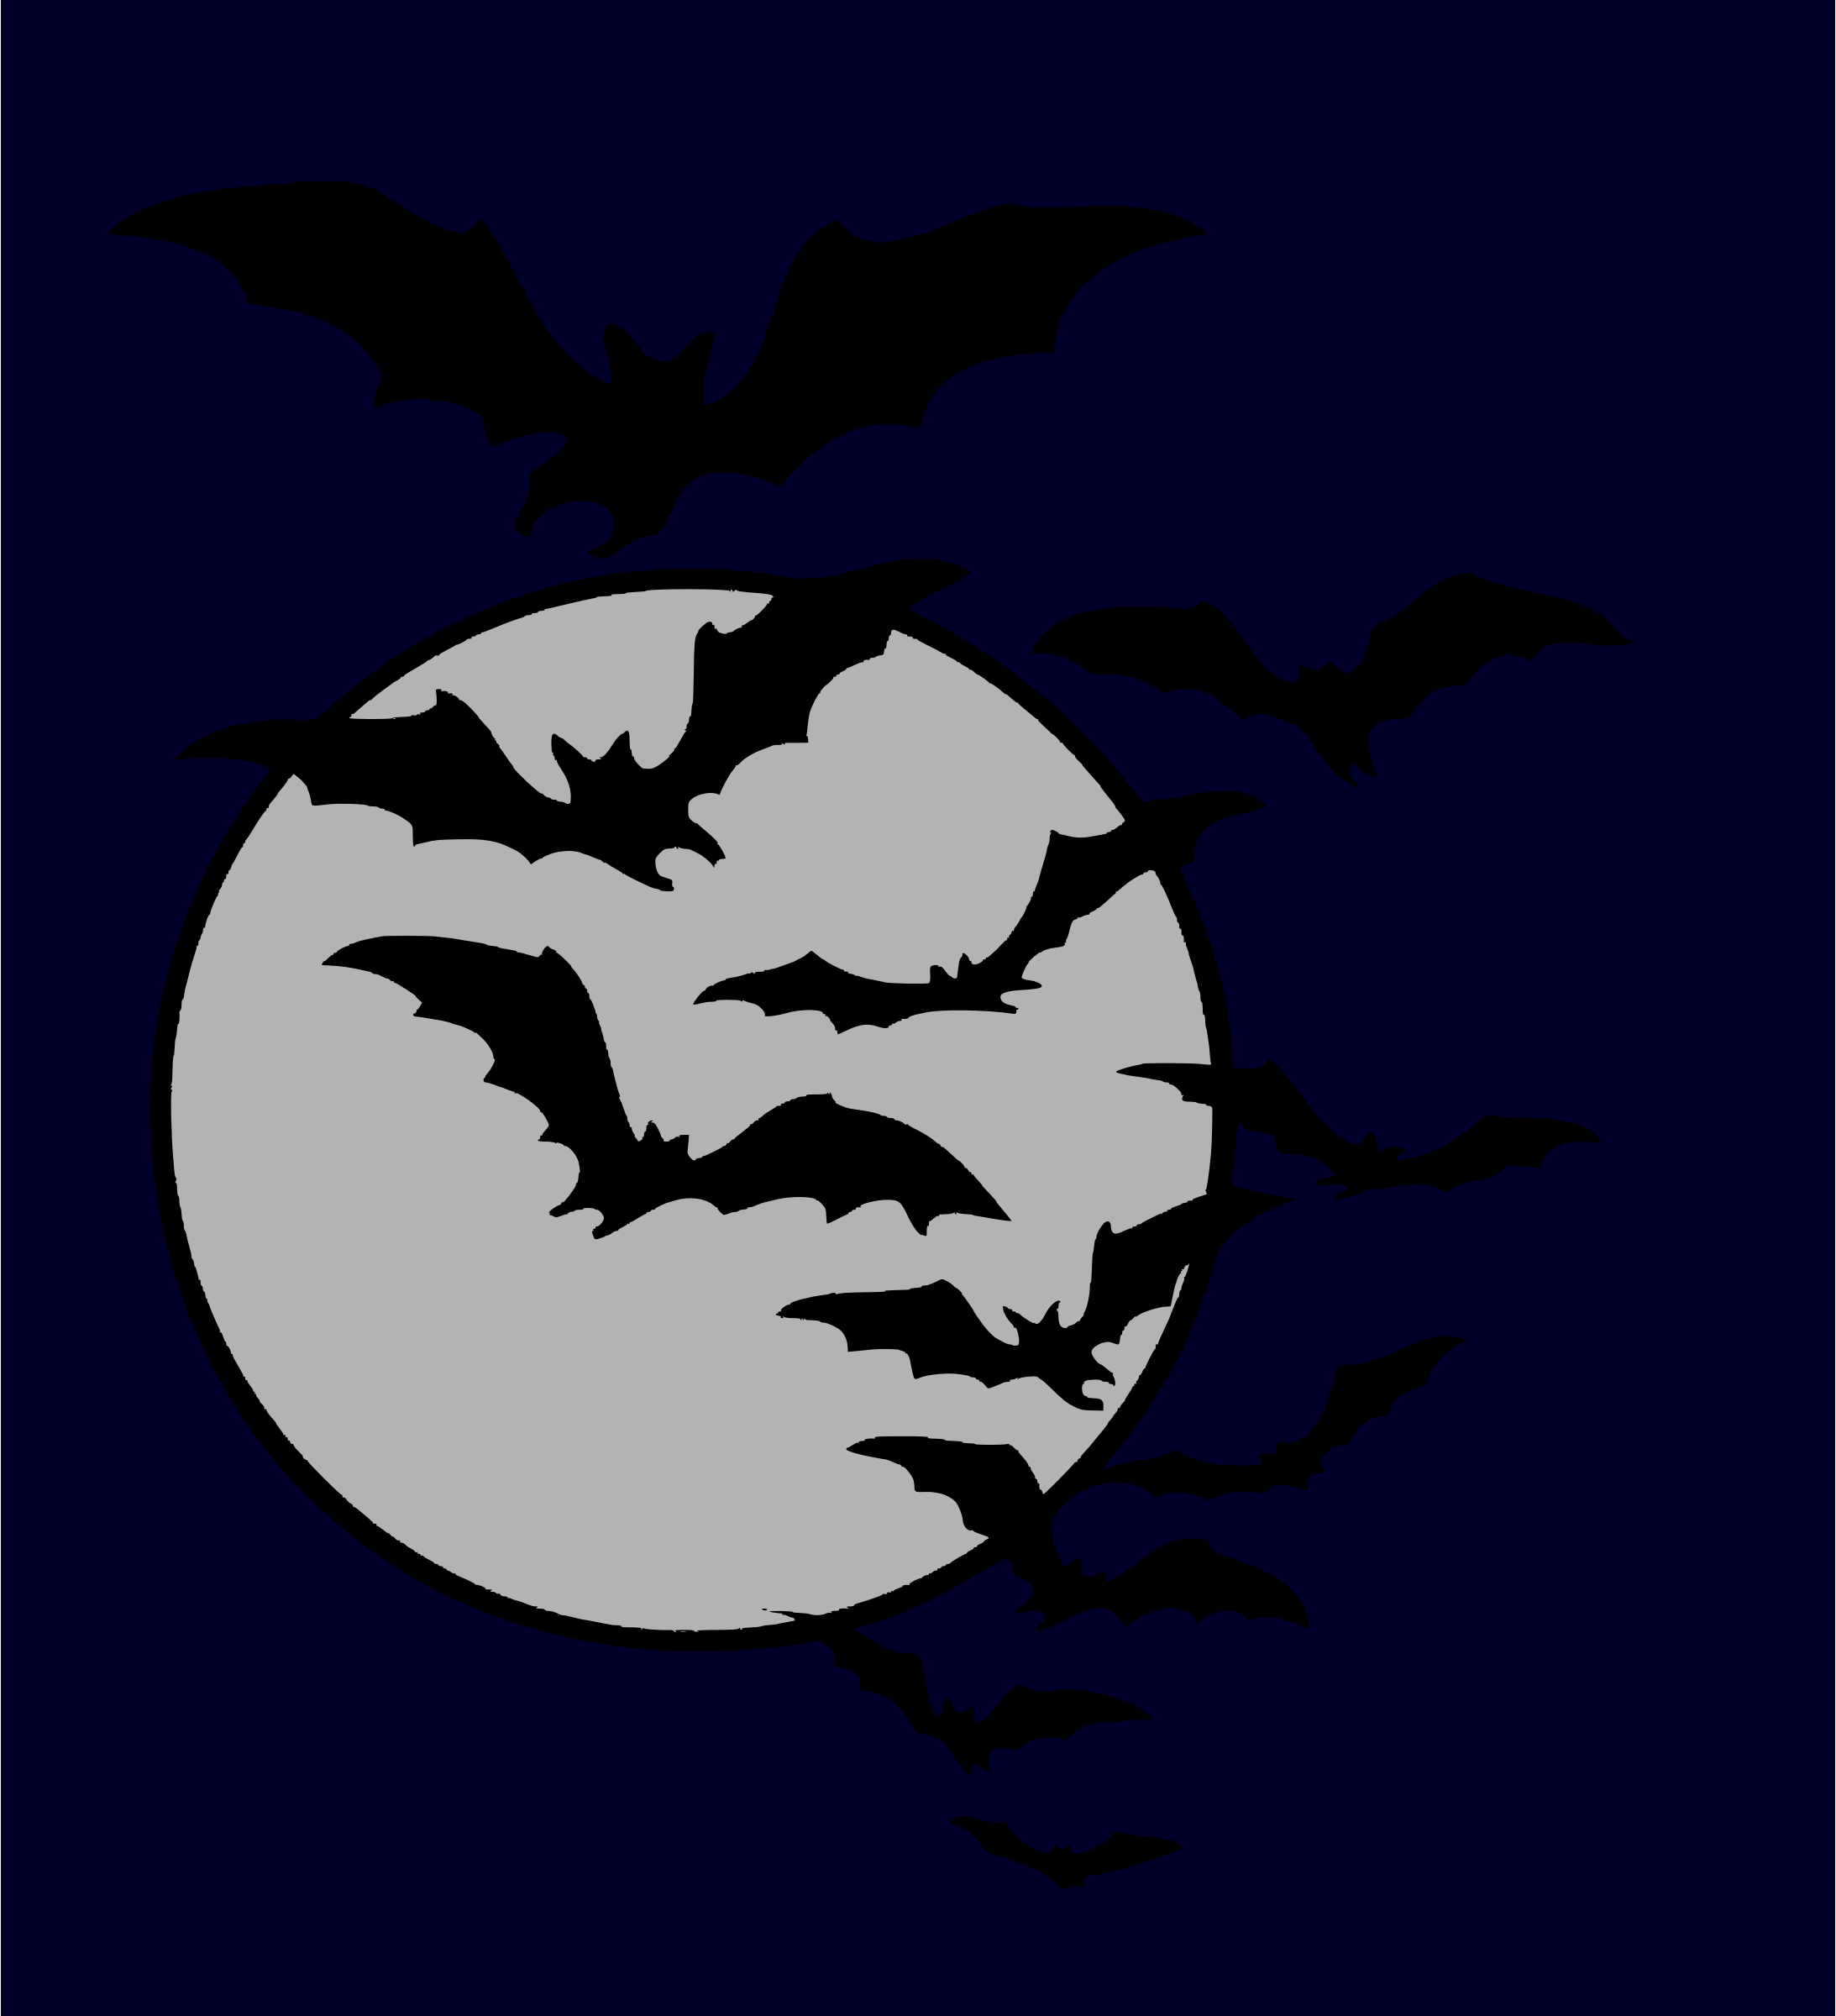 Bat night by liftarn